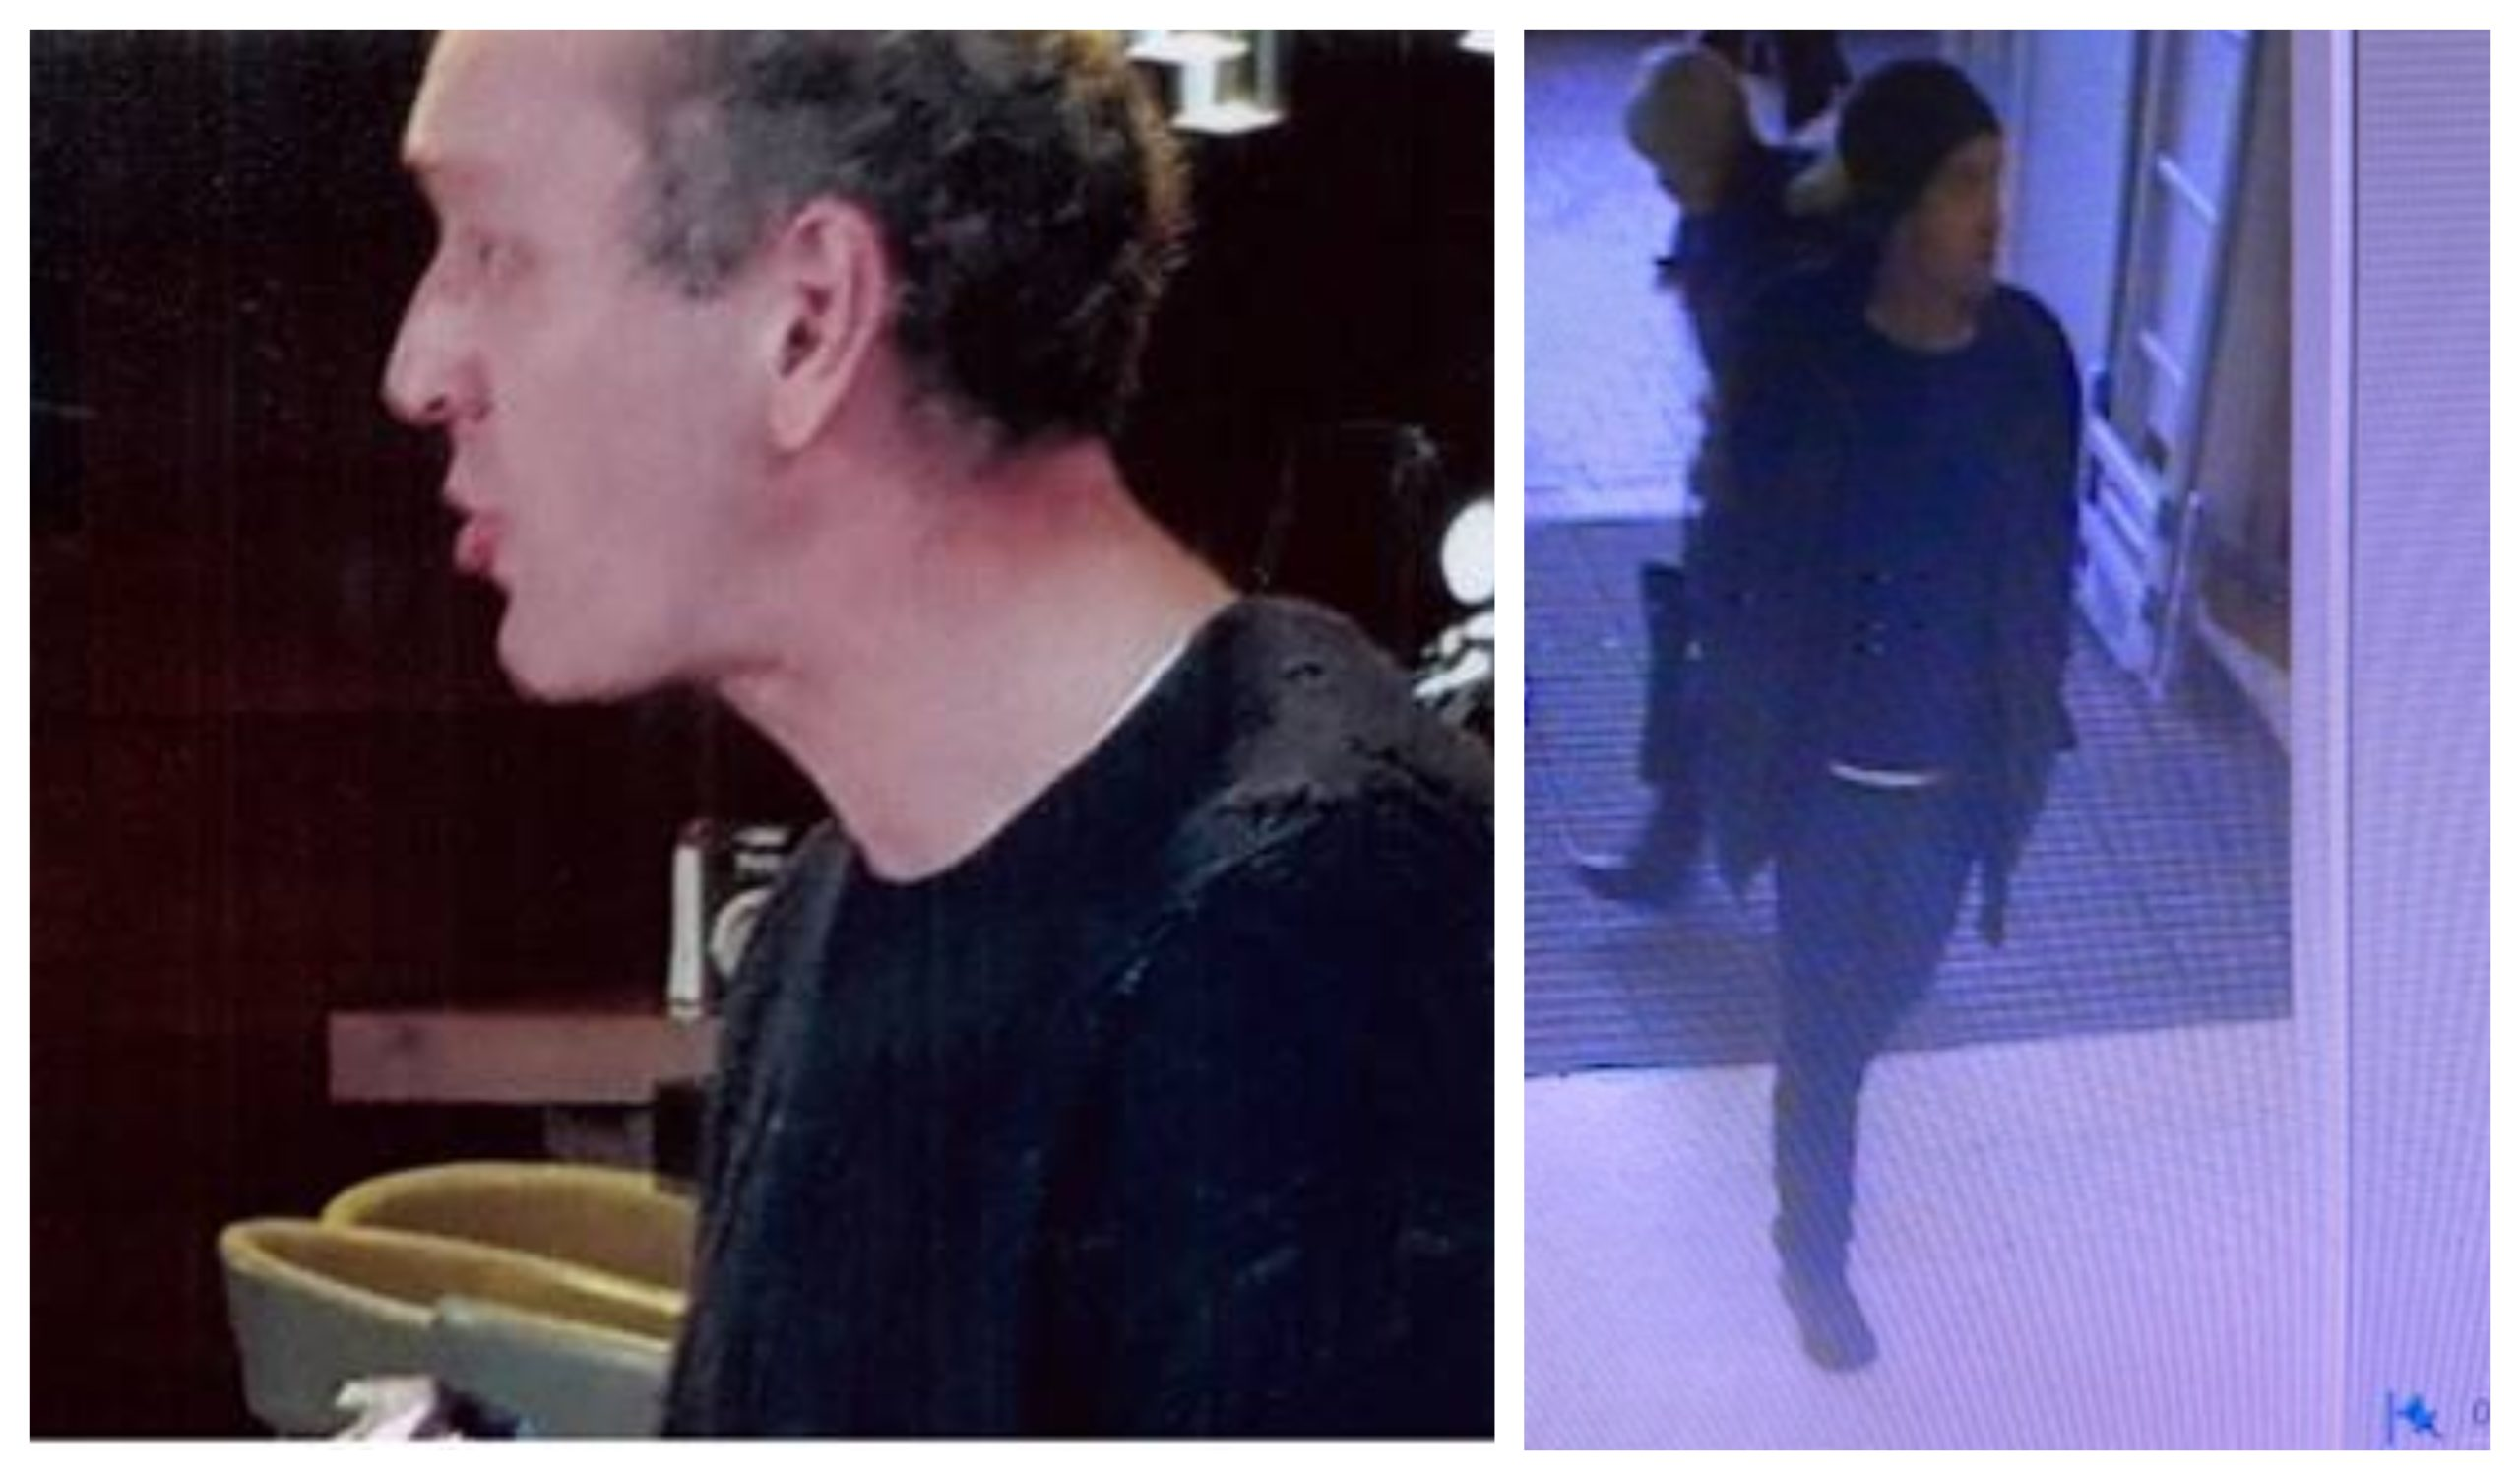 CCTV images of Michael Webster in the Highlands have been released by police.